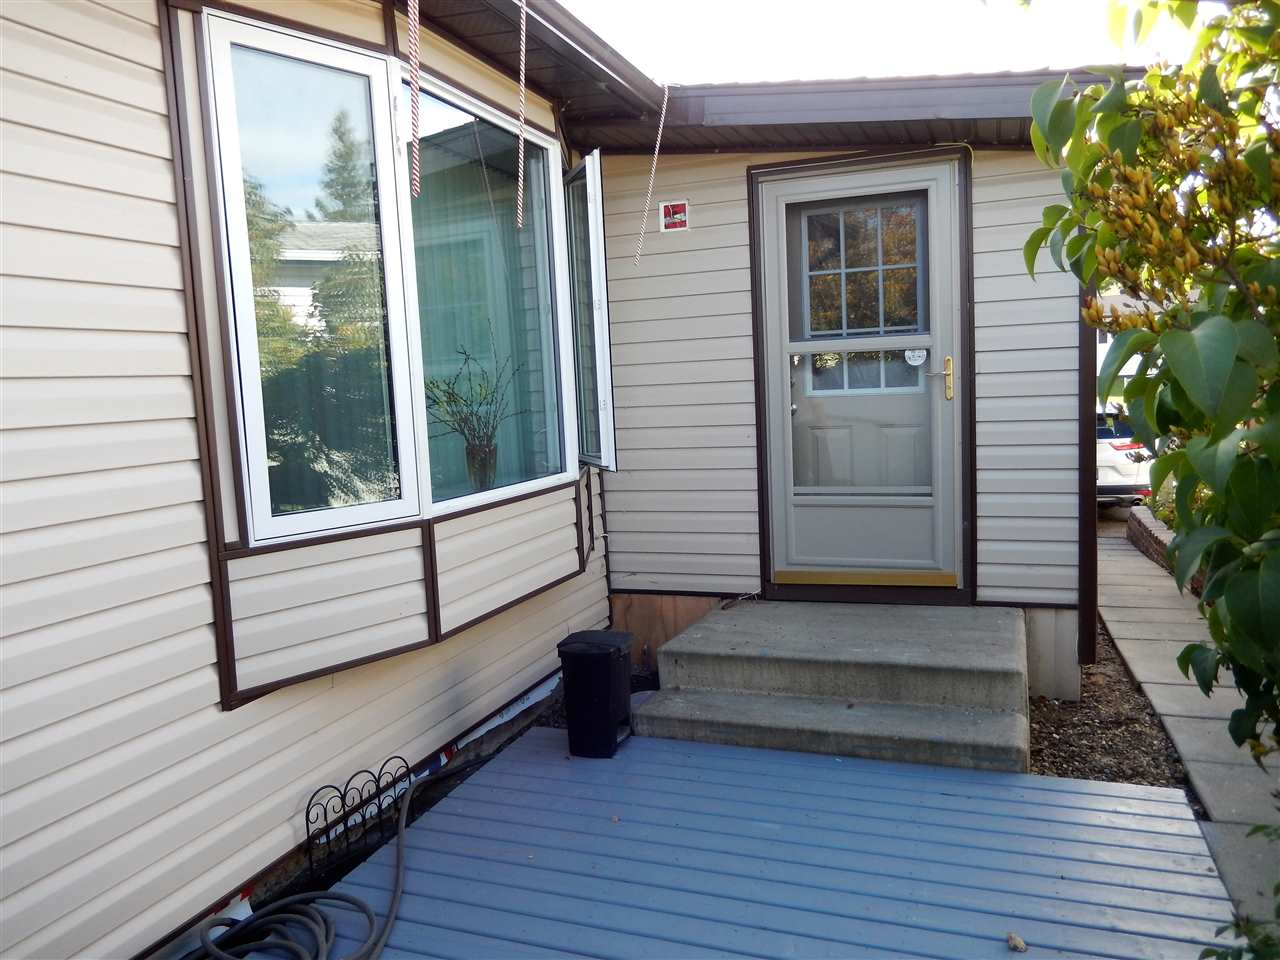 This DOUBLE WIDE home has a UNIQUE LAYOUT and with the Addition, there is 1408 sq ft...Spacious Living Rm, Formal Dining Rm with GARDEN DOORS leading to the BACK DECK, GORGEOUS GALLEY KITCHEN (completely renod) & DINETTE area...MASTR BEDR has WALK THRU & WALK-IN CLOSETS, plus 2PCE ENSUITE...2 more bedrs & MAIN BATHR has LARGE SHOWER with SEAT. The home is all DRYWALLED & has beautiful BIG WINDOWS...the ADDITION is 20x8 ft (unheated) & serves as a PORCH & big STORAGE area. Over recent years this home has had a complete reno including: SHINGLES (2018), HWT (2018),  SOFFIT, FACIA, EAVESTROUGH, STRYOFOAM INSUL & WRAP (under siding), SKIRTING, SIDING, COMPLETE KITCHEN, ALL SHUT OFF VALVES, RENOD BATHRS, PAINT, BASEBOARD, FLOORING (no carpet), WINDOWS, WINDOW COVERINGS, FURNACE & ALL NEWER APPLIANCES. The PRIVATE YARD has a BIG DECK, raised FLOWER BEDS, SHED, TREES & SIDEWALKS on both sides. THIS HOME SITS ON CONCRETE PONY WALL AND HAS PILINGS UNDERNEATH.